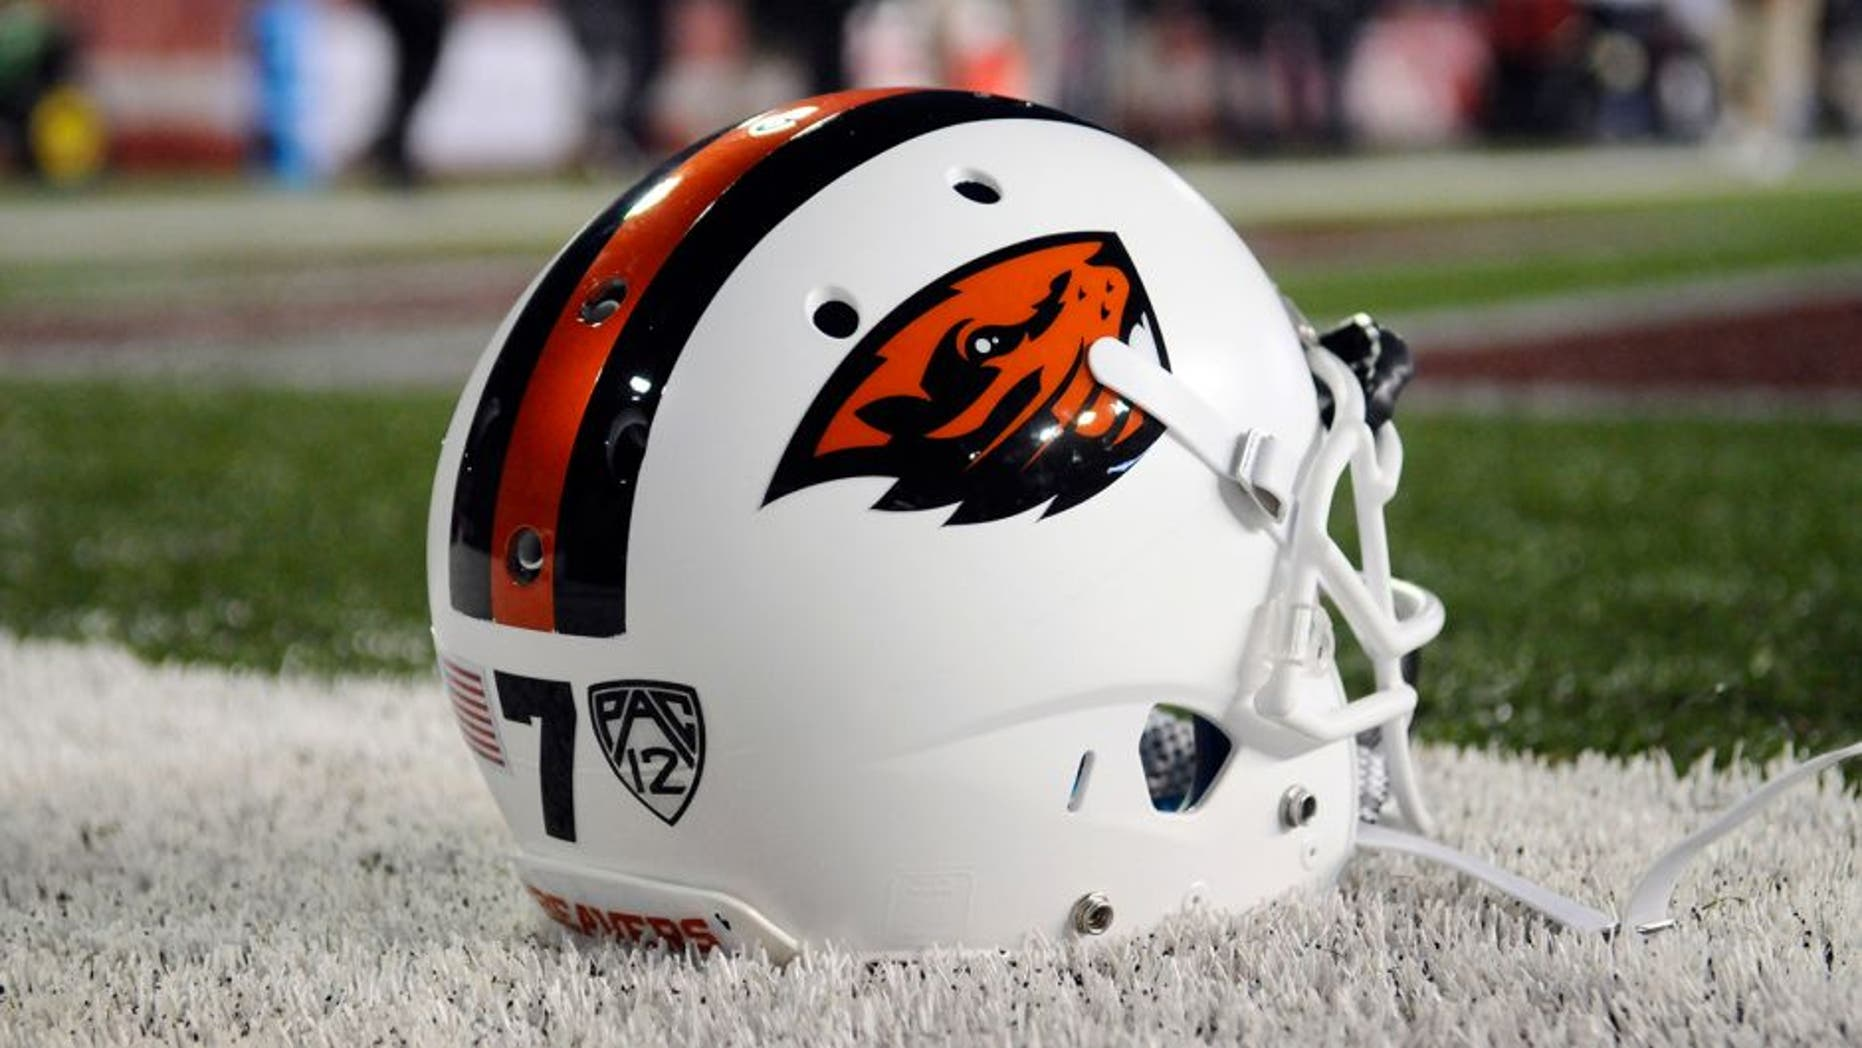 Oct 12, 2013; Pullman, WA, USA; Oregon State Beavers helmet sits on the sideline before a game against the Washington State Cougars at Martin Stadium. Mandatory Credit: James Snook-USA TODAY Sports